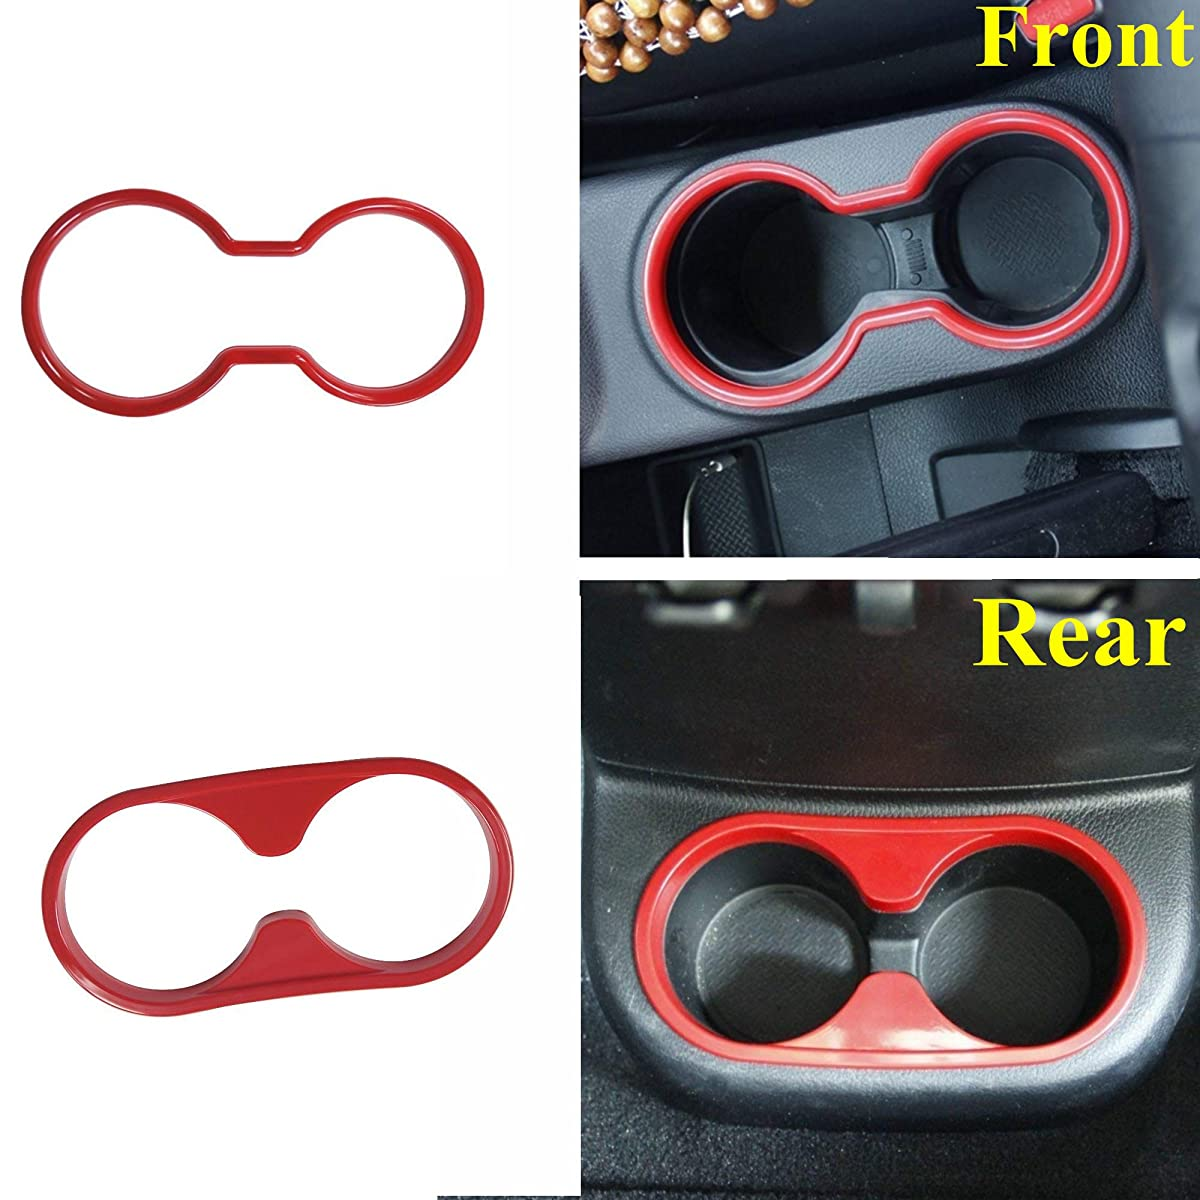 AVOMAR 2pcs/set ABS Interior Front & Rear Water Cup Holder Trim cover for Jeep Wrangler 2011-2017 (Red)